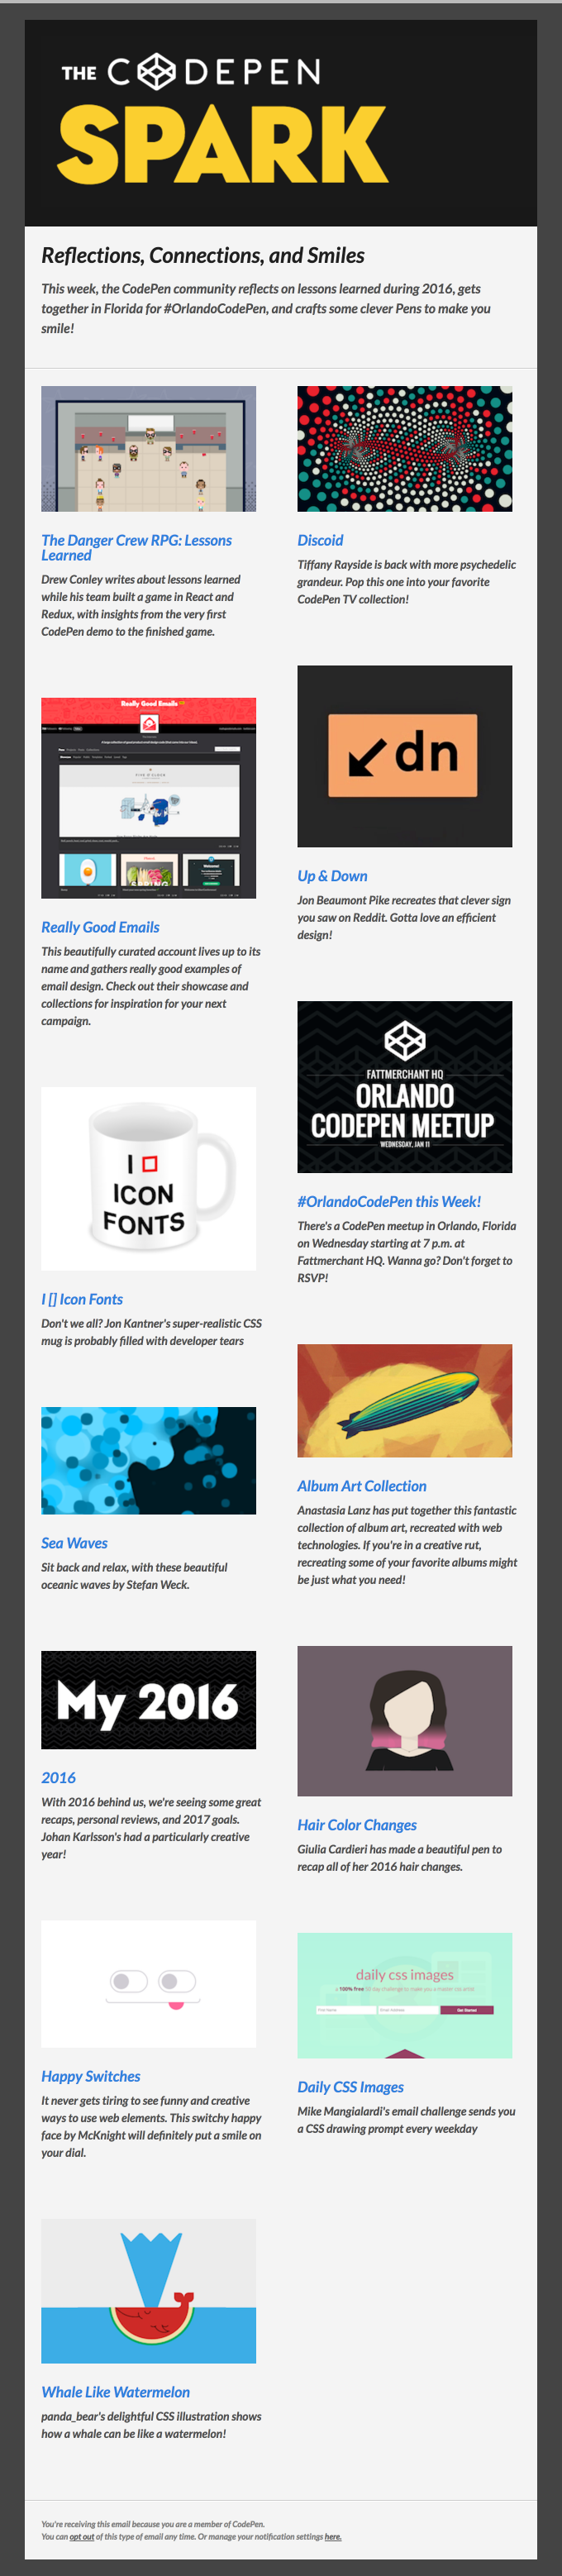 Codepen Emails on Really Good Emails